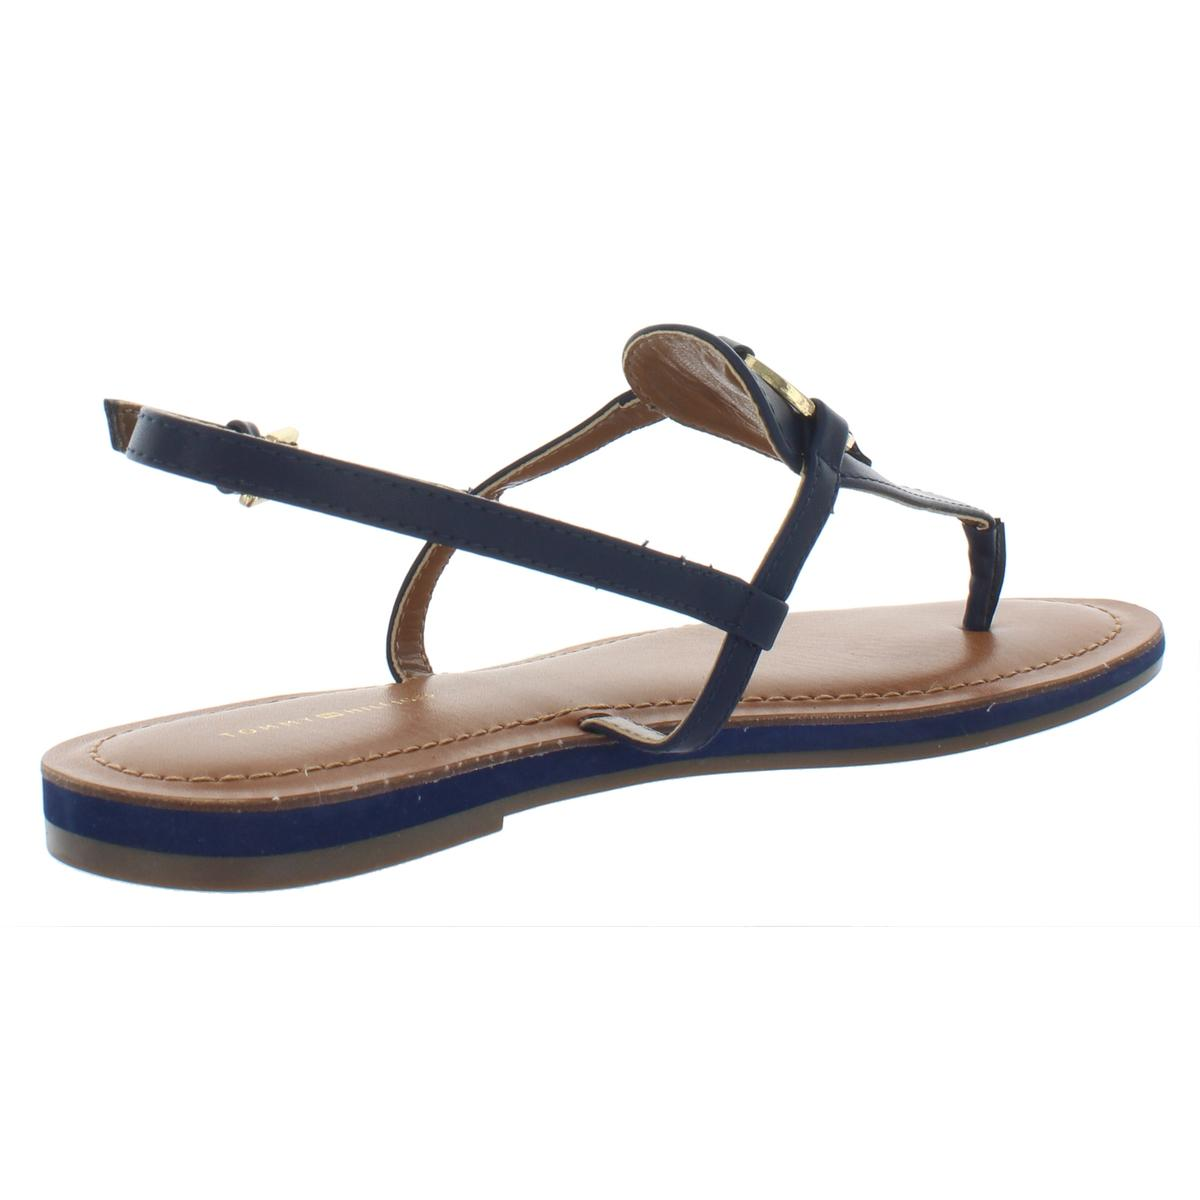 Tommy-Hilfiger-Womens-Genei-Metallic-T-Strap-Thong-Sandals-Shoes-BHFO-7834 thumbnail 9